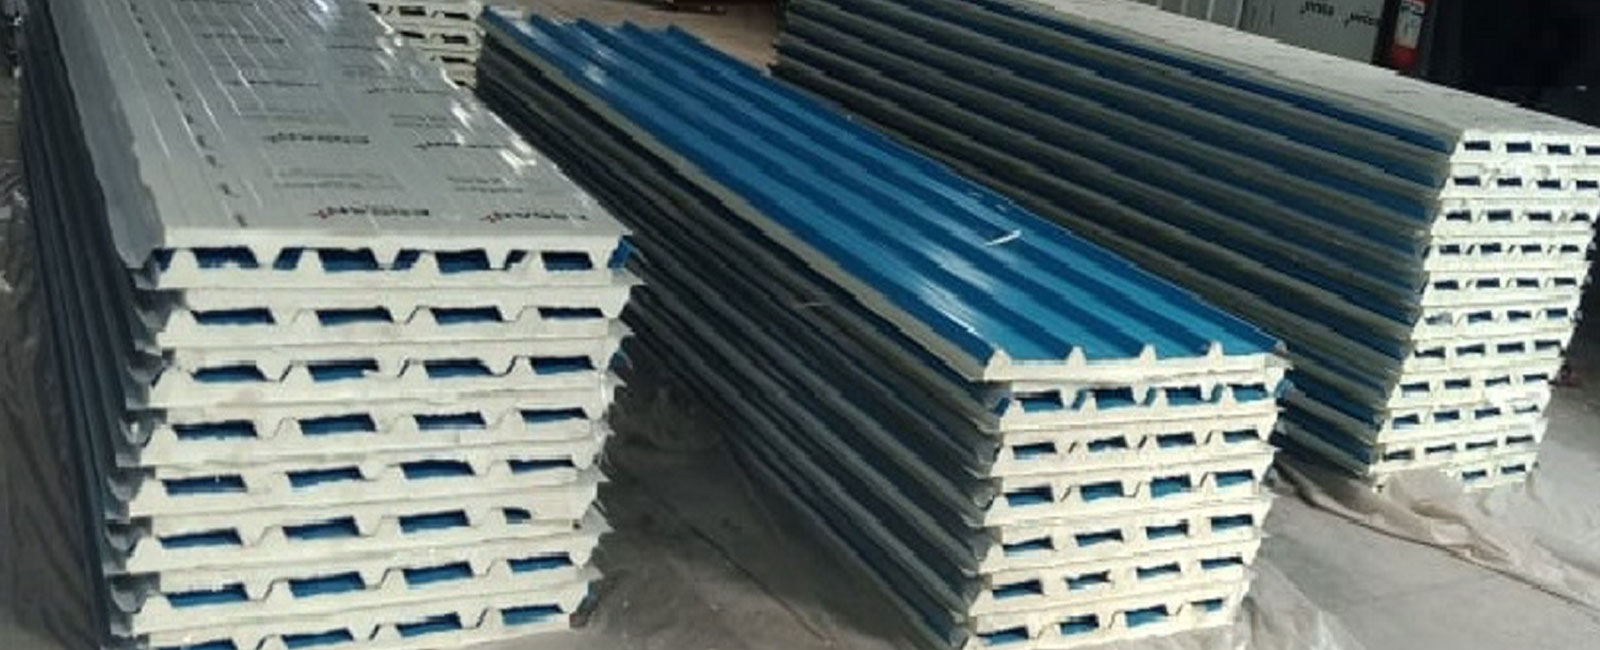 Sandwich panel supplier and manufacturer